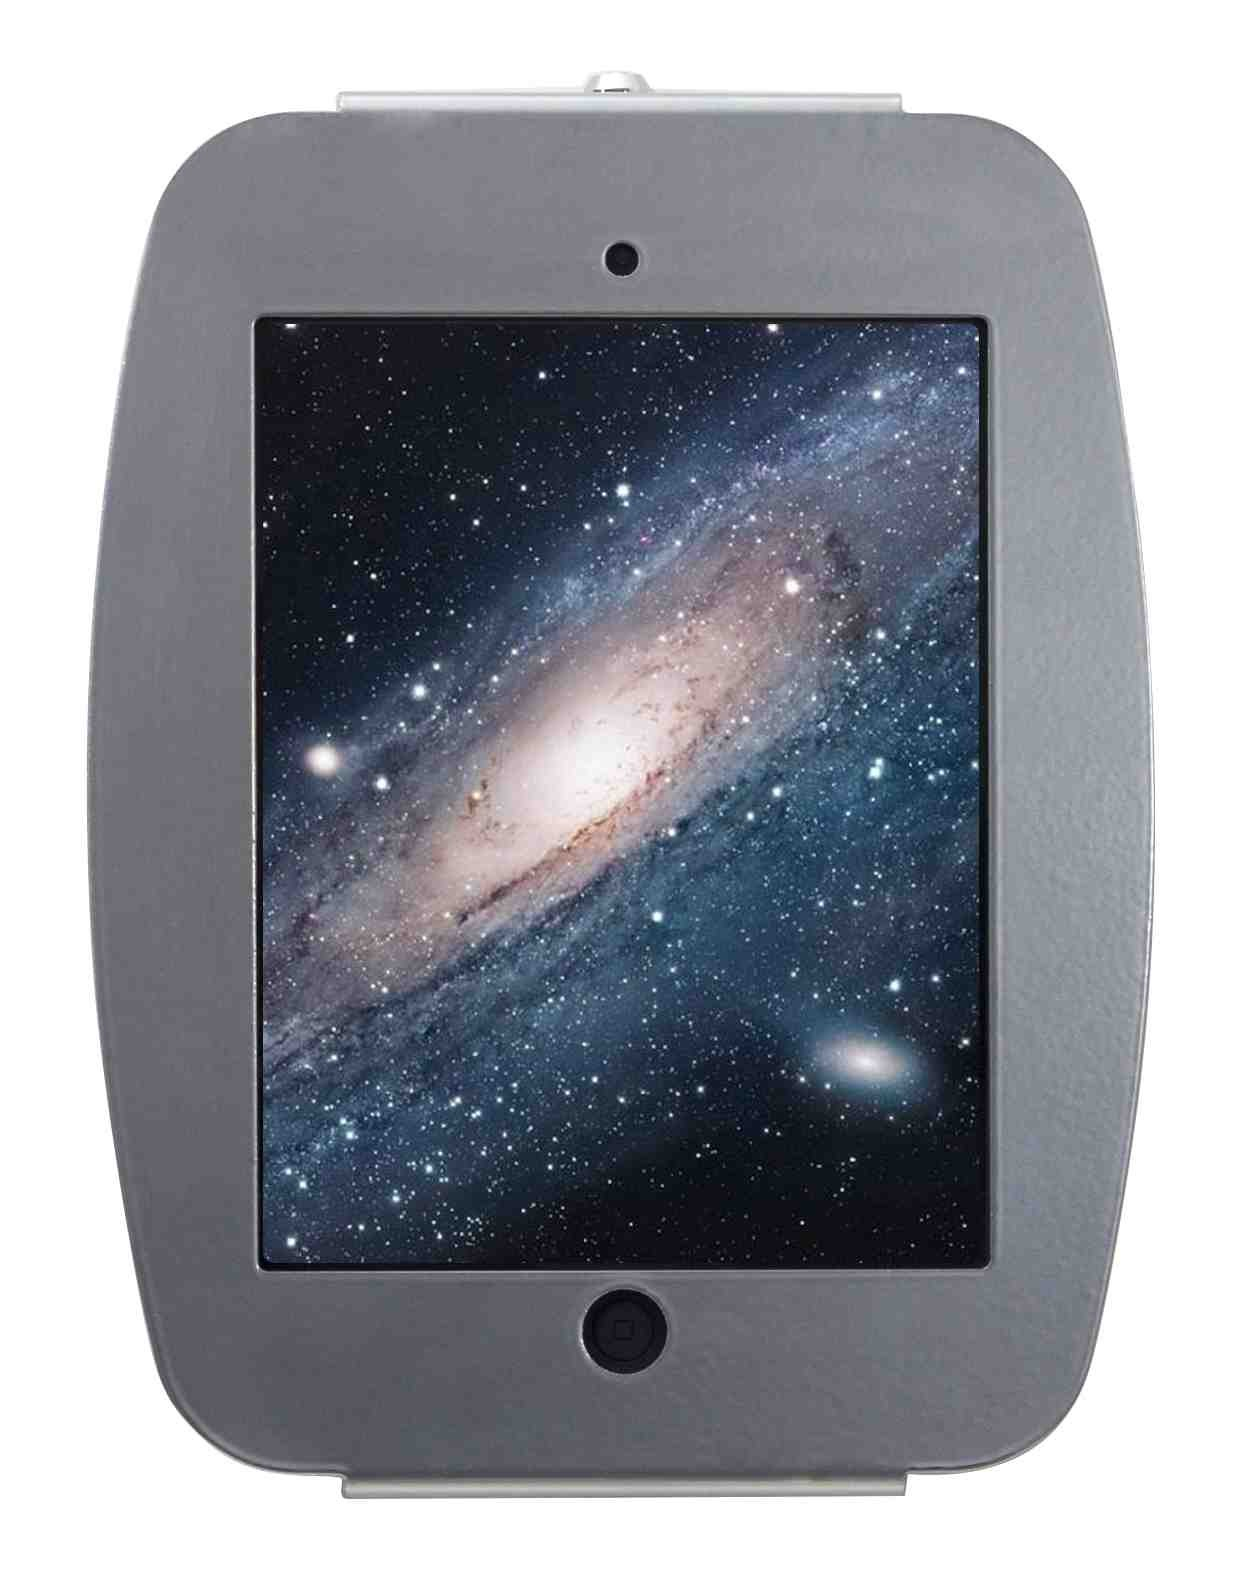 Maclocks Apple iPad Mini Space Enclosure Series Wall Mount Case - Silver - (235SMENS)